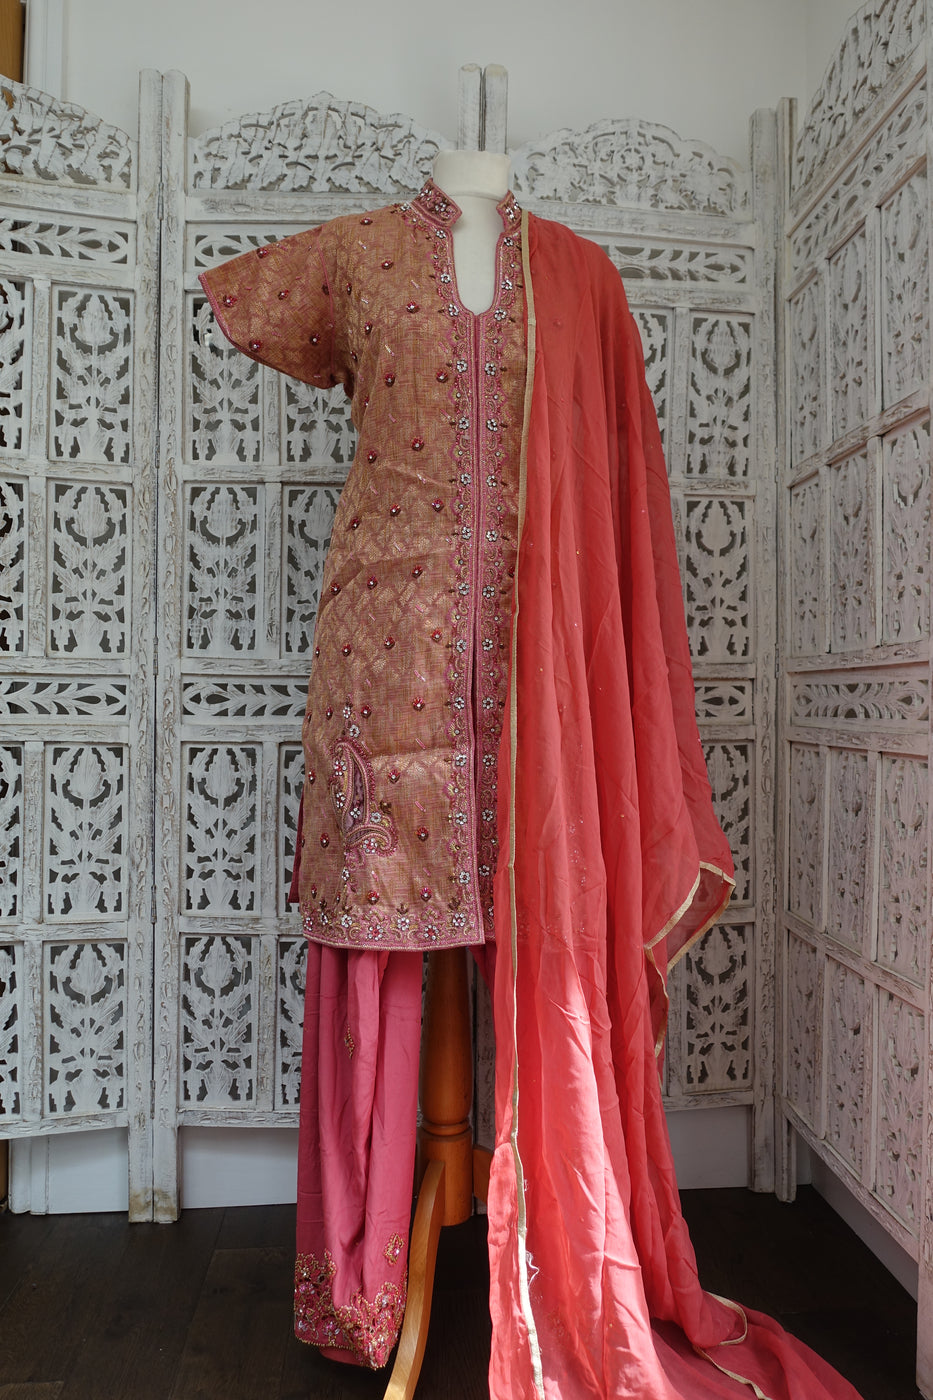 Dusky Pink Silk Salwar Kameez - UK 18 / EU 44 - New - Indian Suit Company